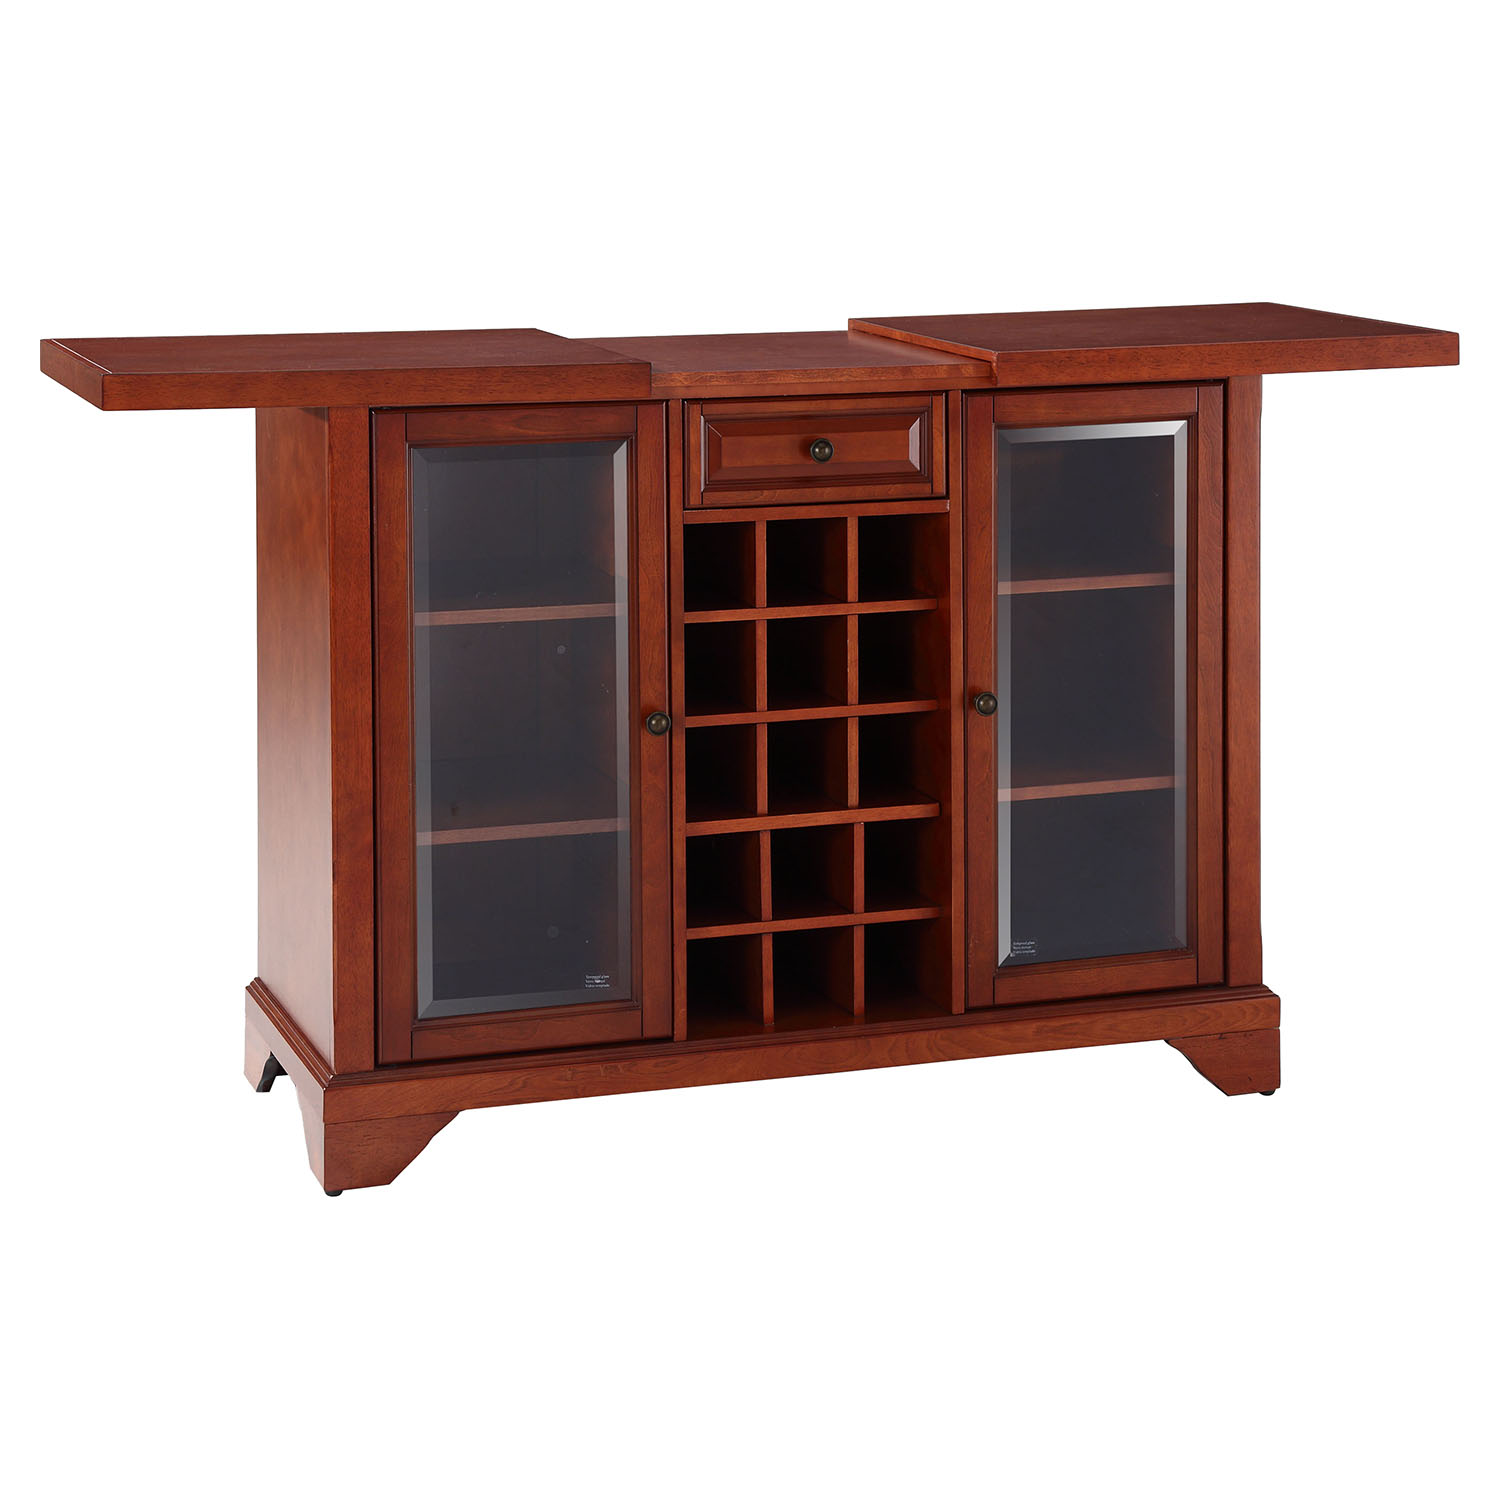 LaFayette Sliding Top Bar Cabinet - Classic Cherry - CROS-KF40002BCH